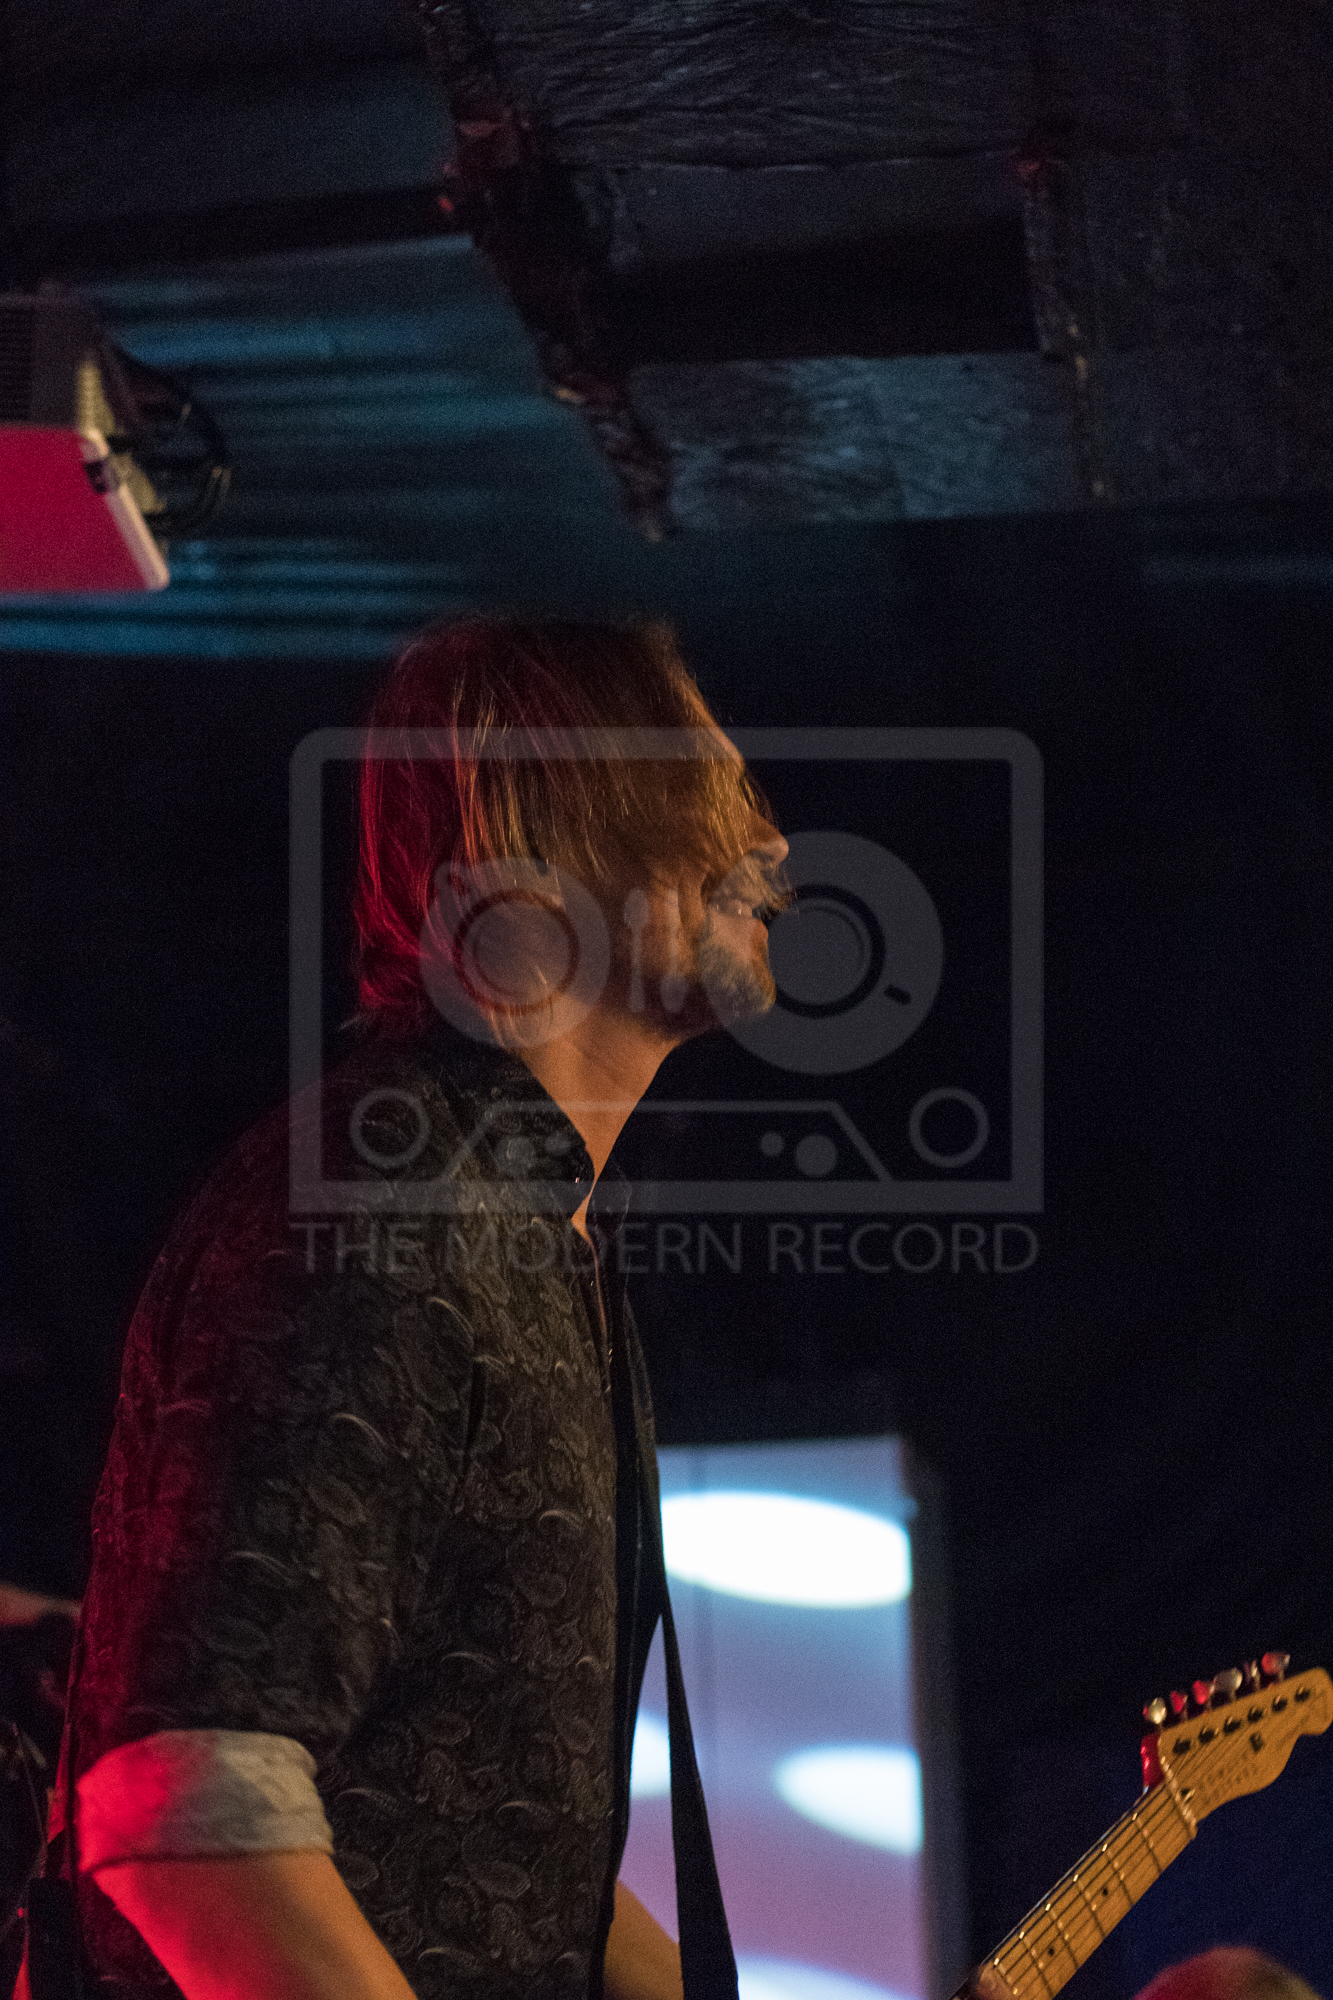 2 - von hertzen brothers - Newcastle University SU, Newcastle - 08-12-18 Picture by Will Gorman Photo.JPG